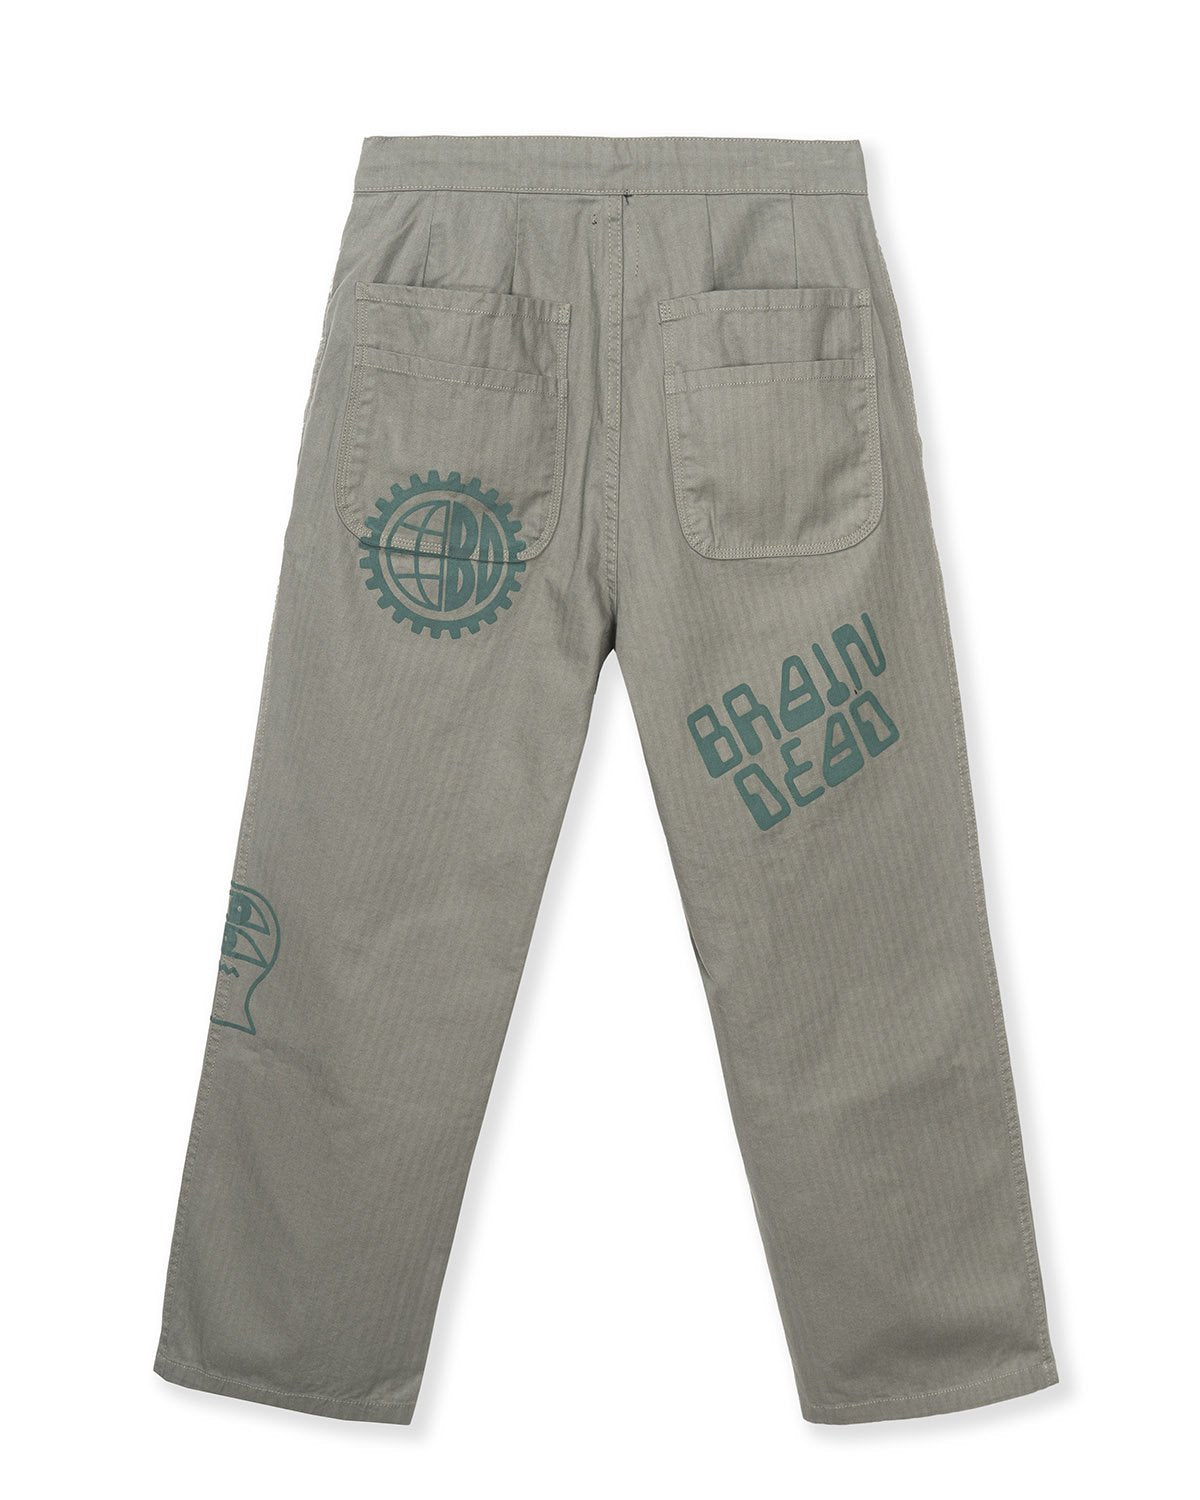 BRAINDEAD M'S PANTS PRINTED CLIMBER PANT - OLIVE